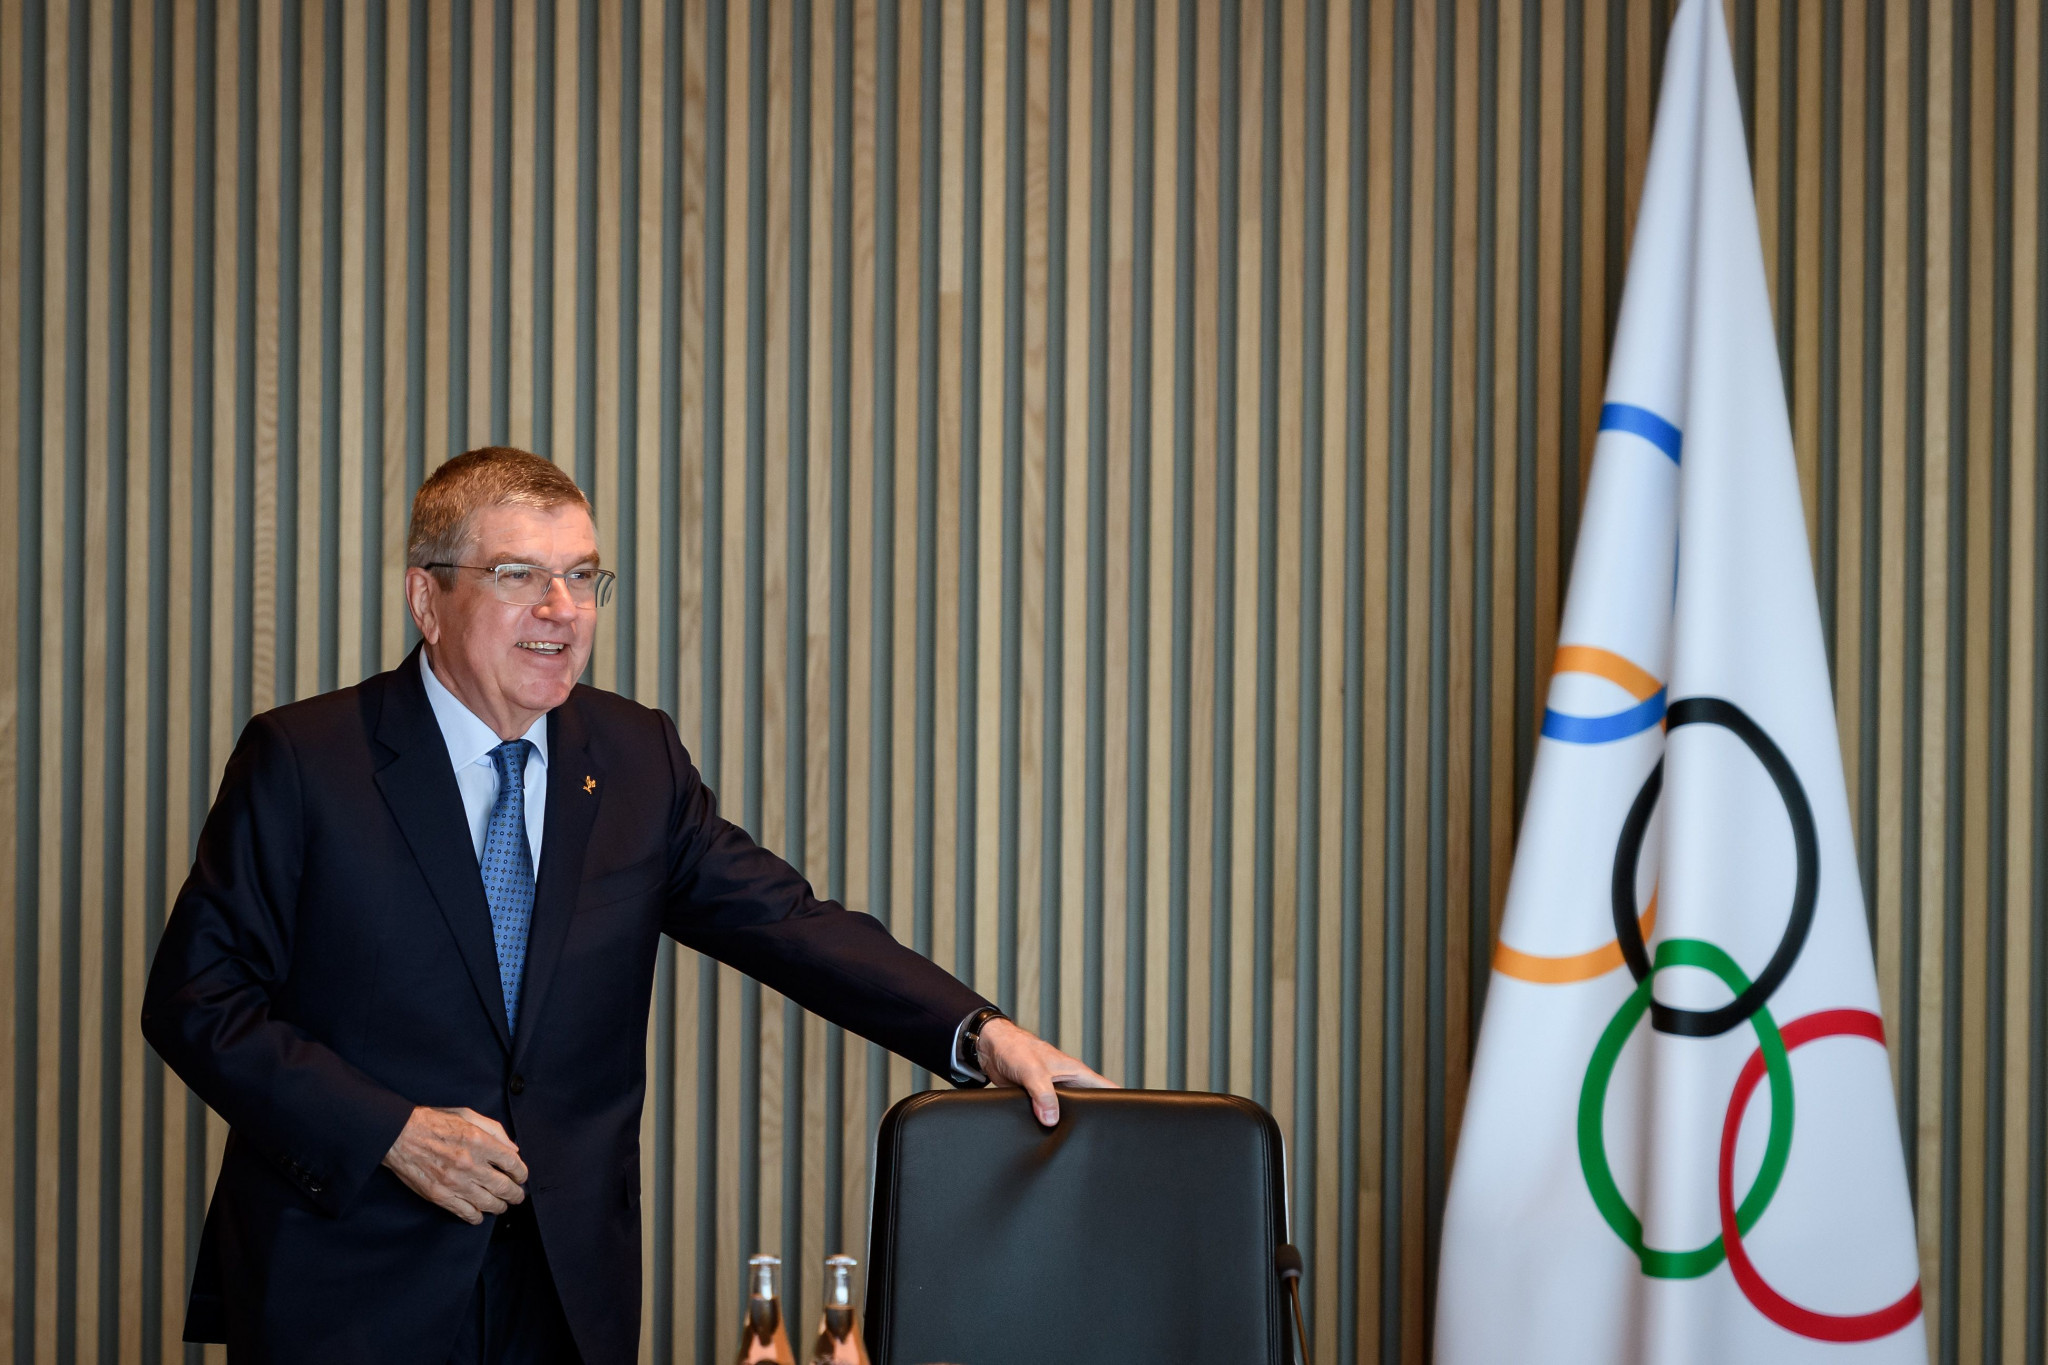 IOC President Thomas Bach fielded numerous questions from the media on the coronavirus outbreak ©Getty Images